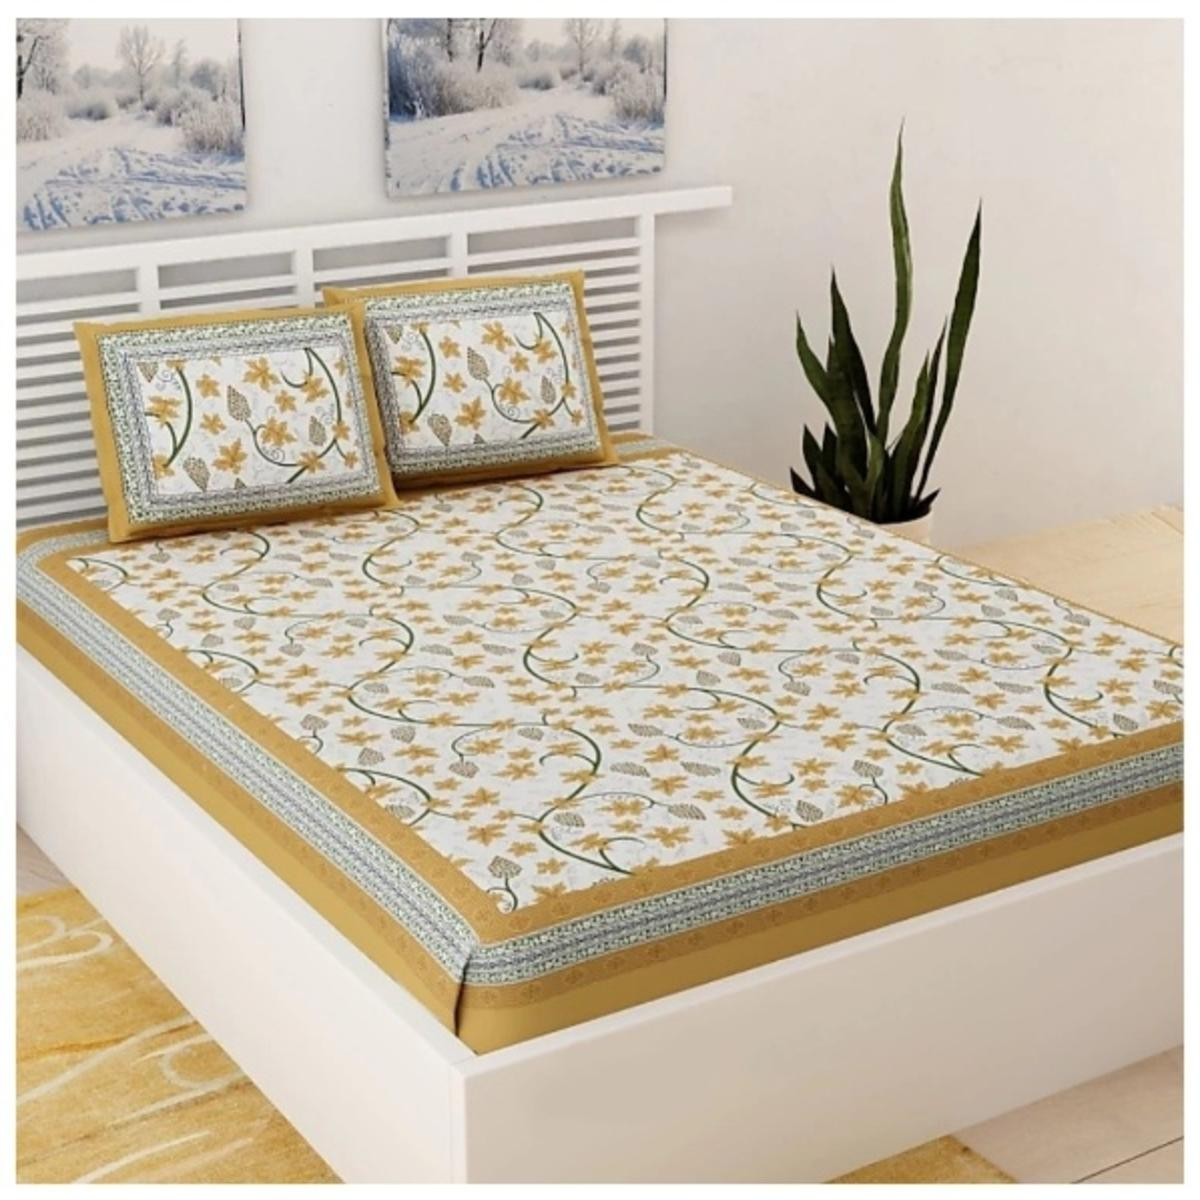 Pooja Fashion - Brown Colored Printed Double Cotton Bedsheet With 2 Pillow Cover